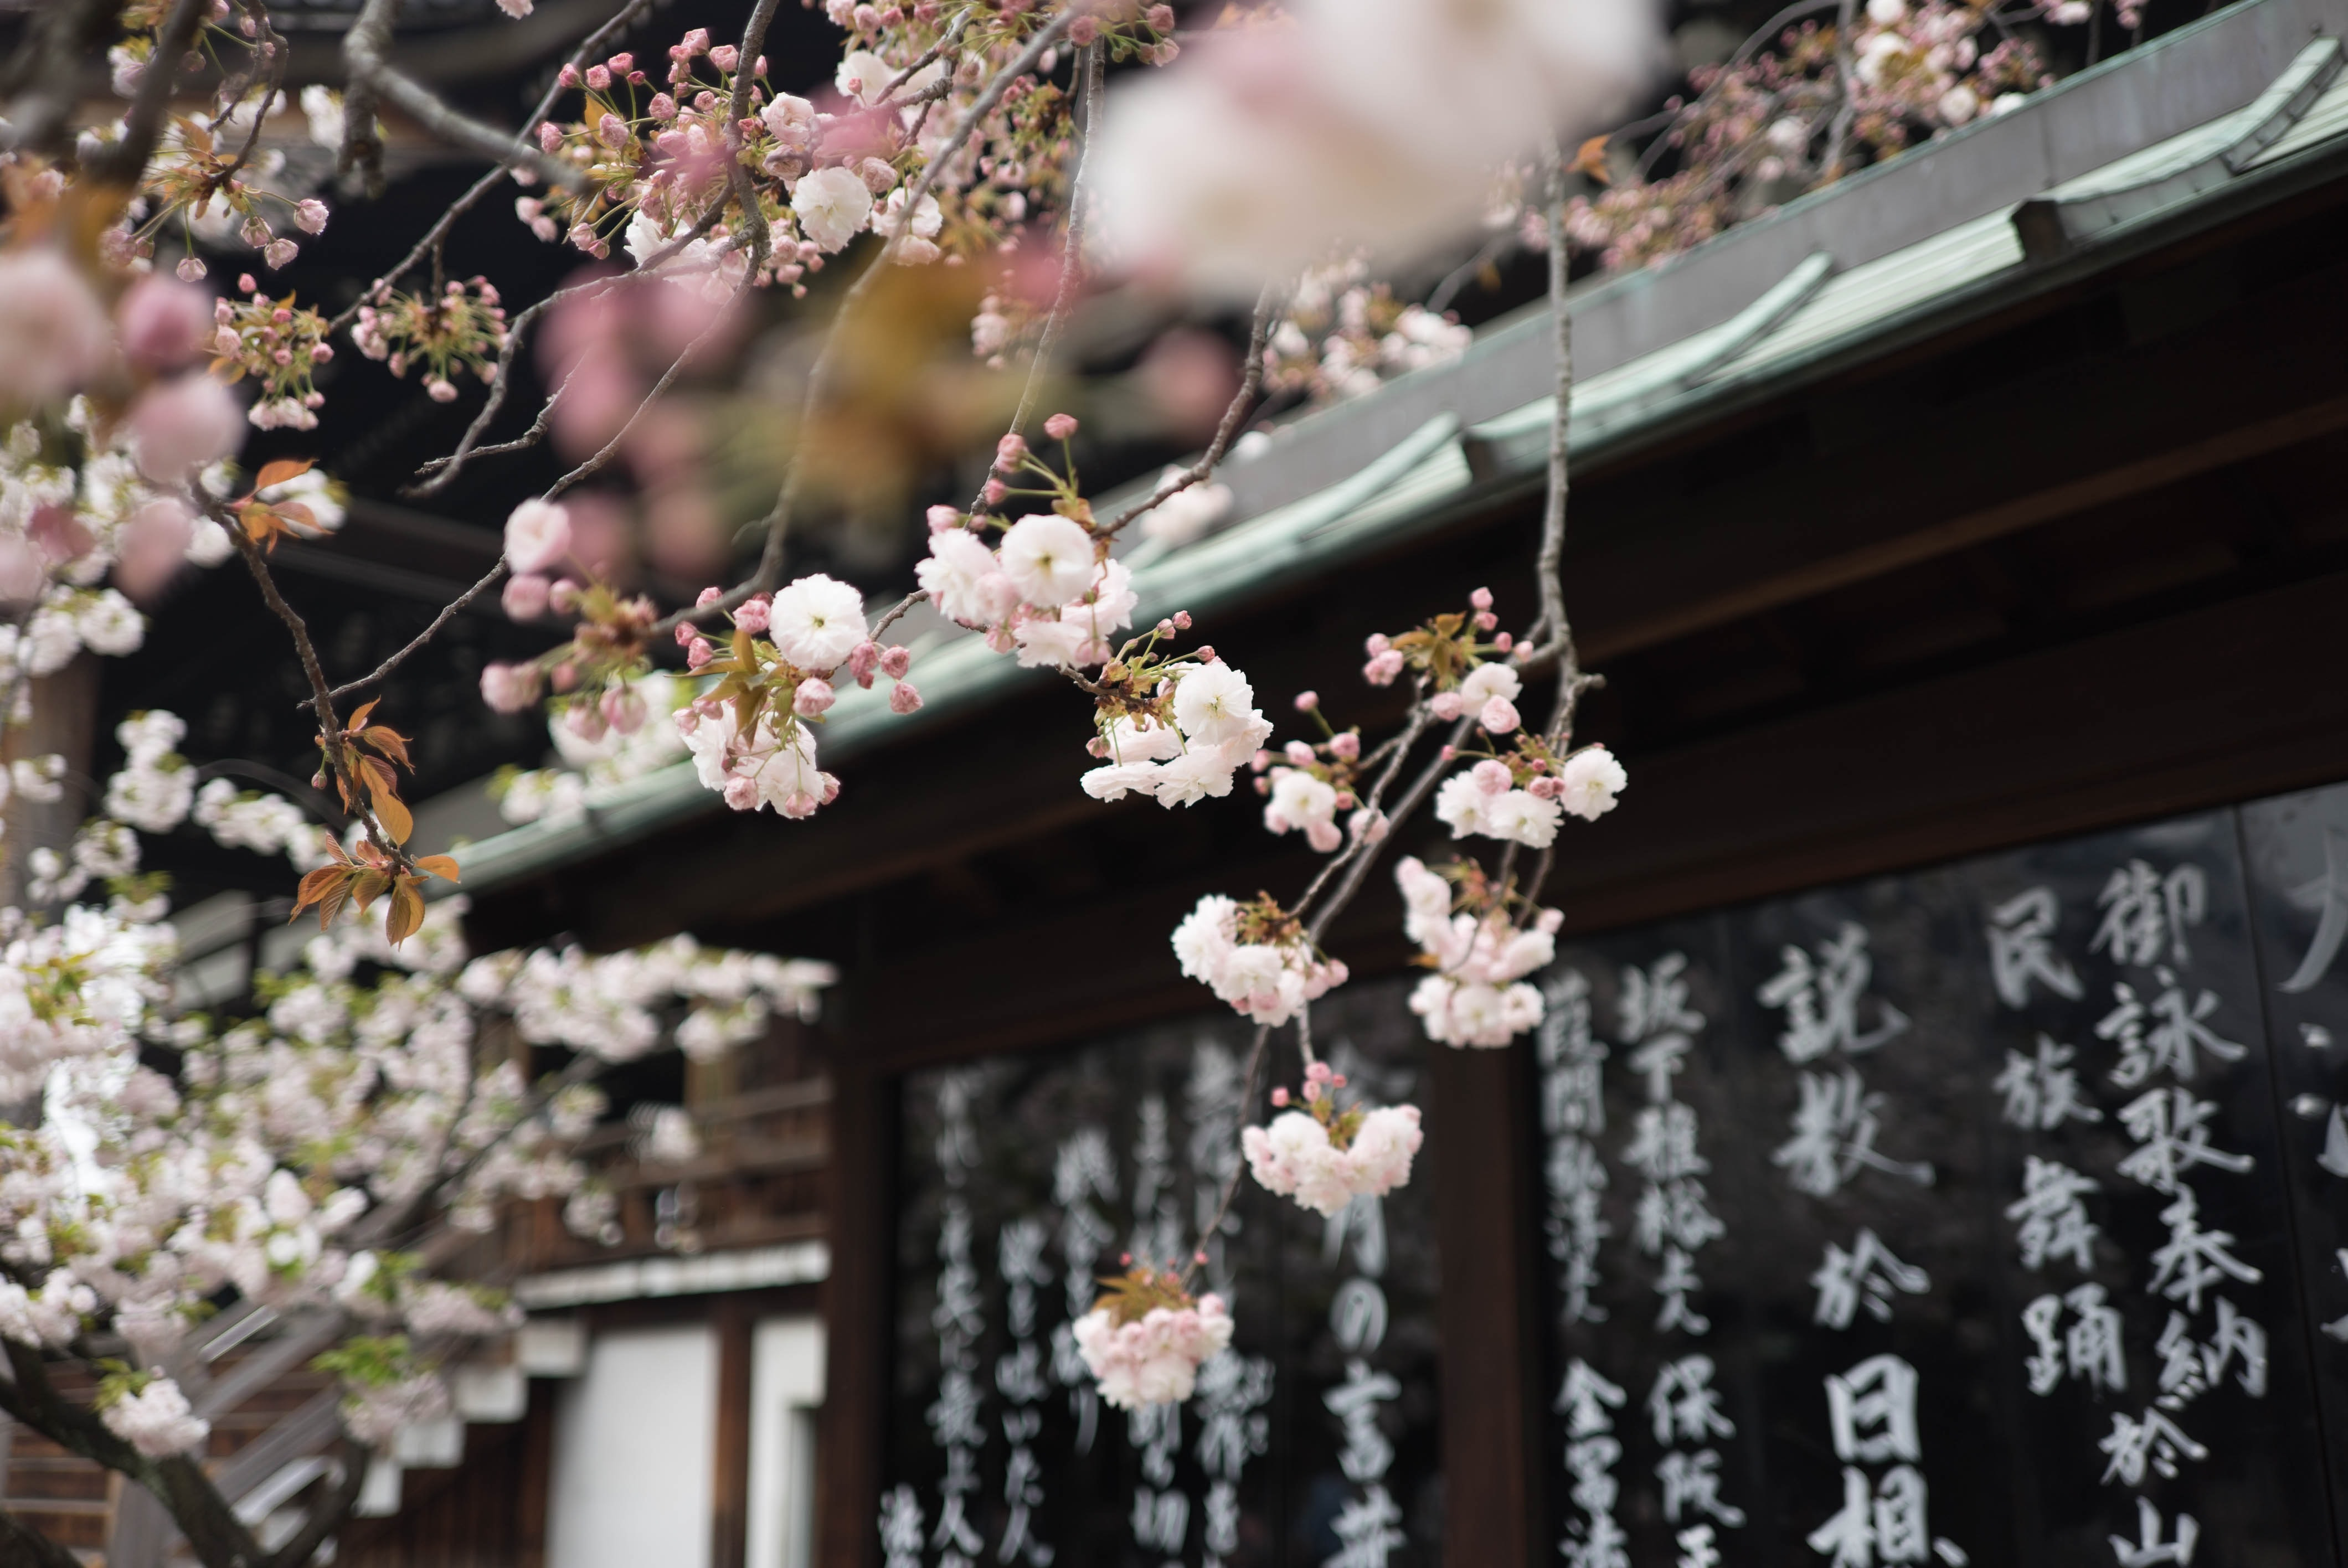 Cherry blossoms at a shrine in Japan.